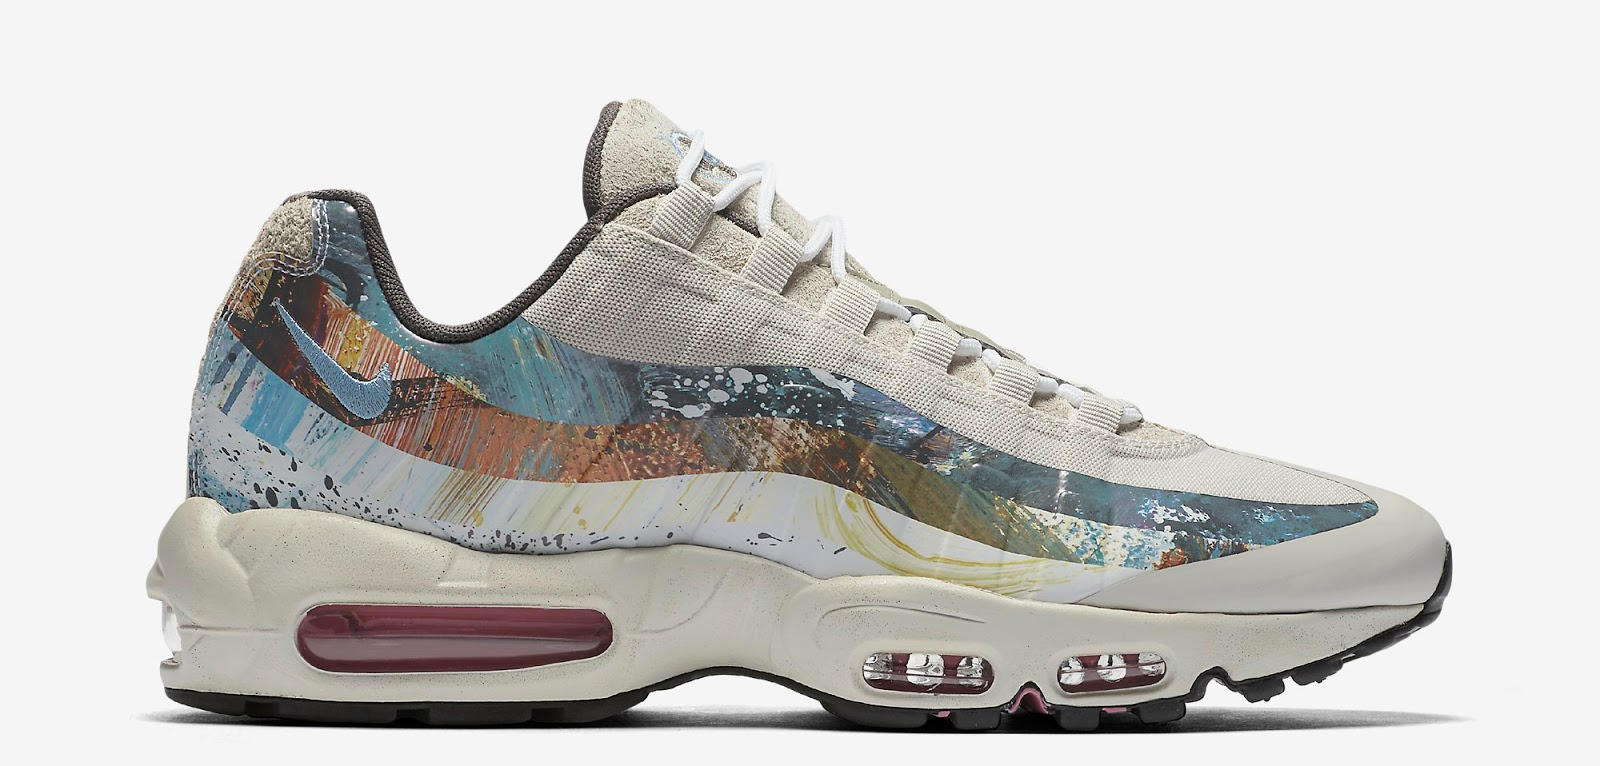 68d5ff49c4 ajordanxi Your #1 Source For Sneaker Release Dates: Dave White x Nike Air  Max '95 DW